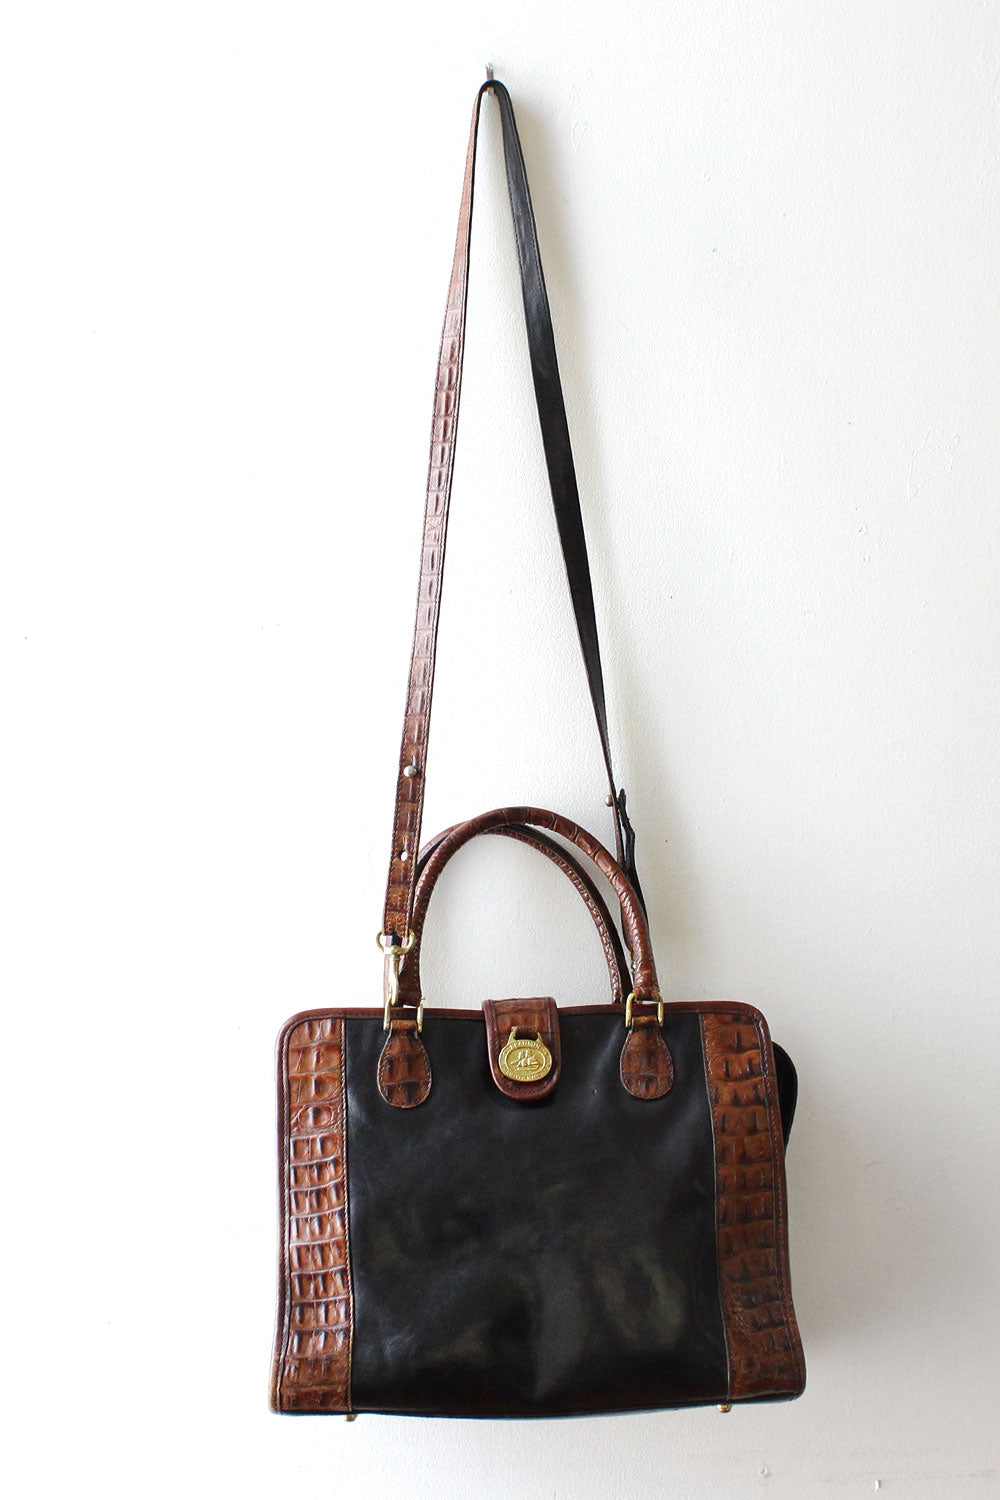 Brahmin Two Tone Satchel